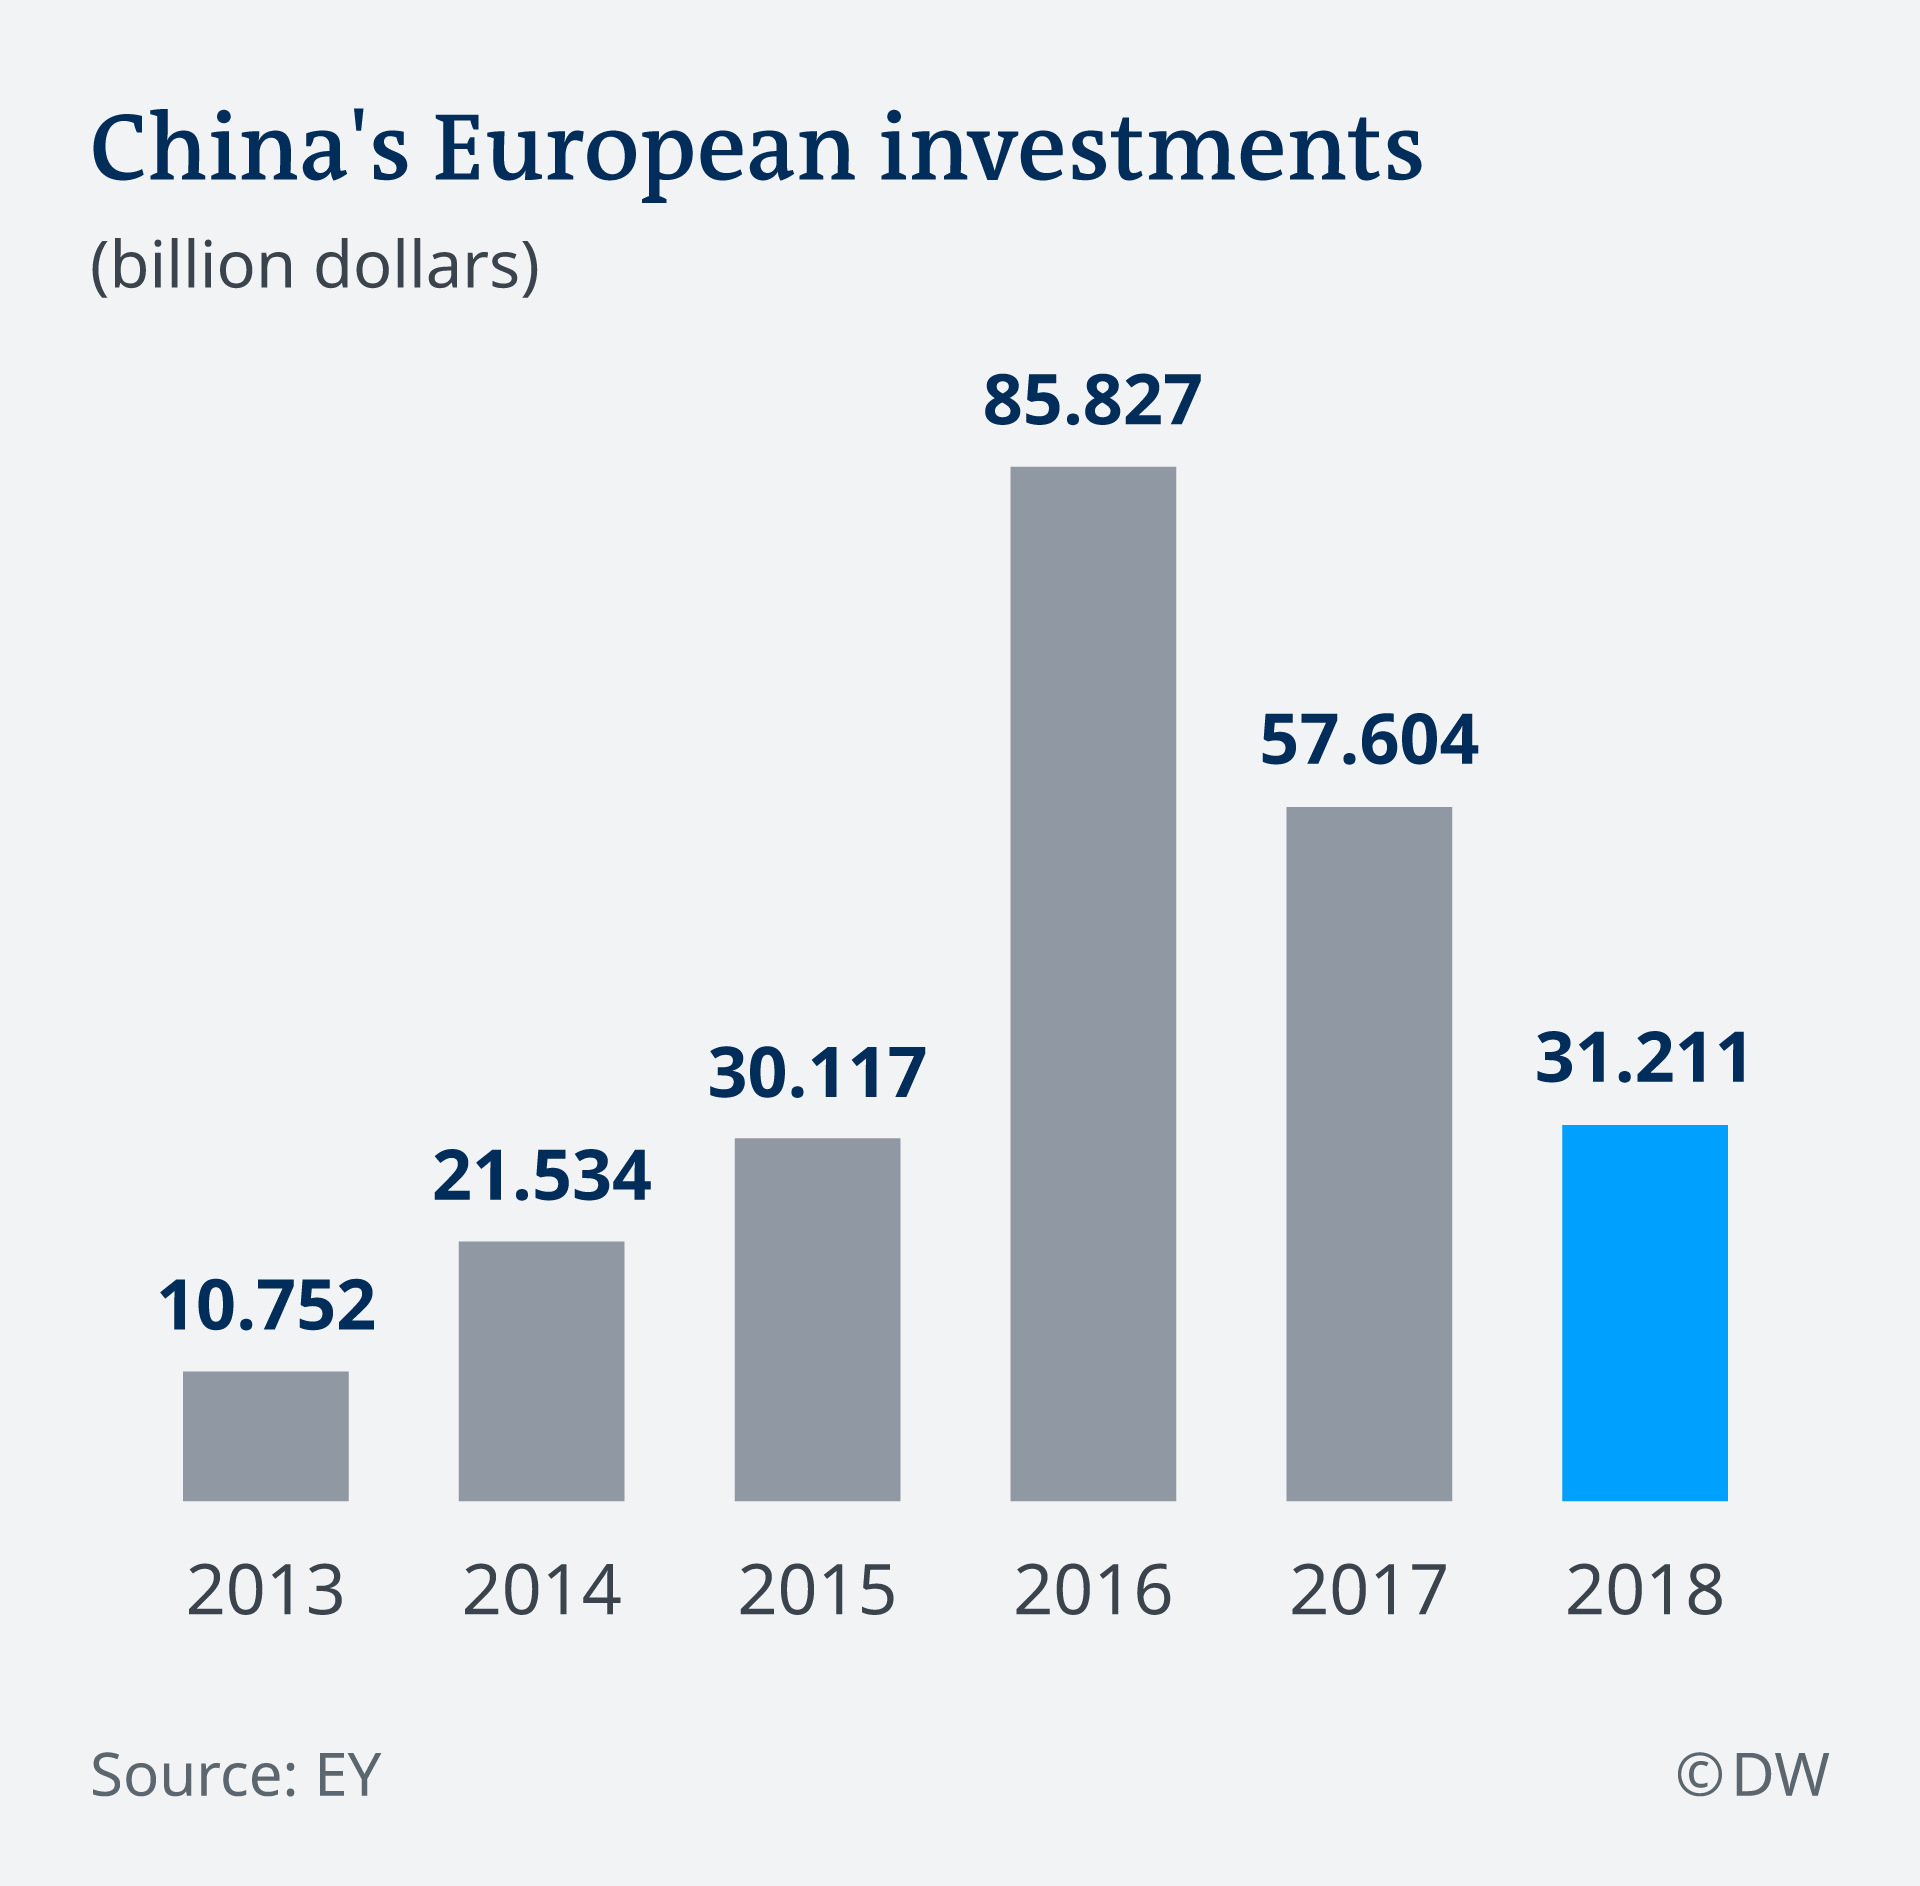 China's European investments in billiion dollars